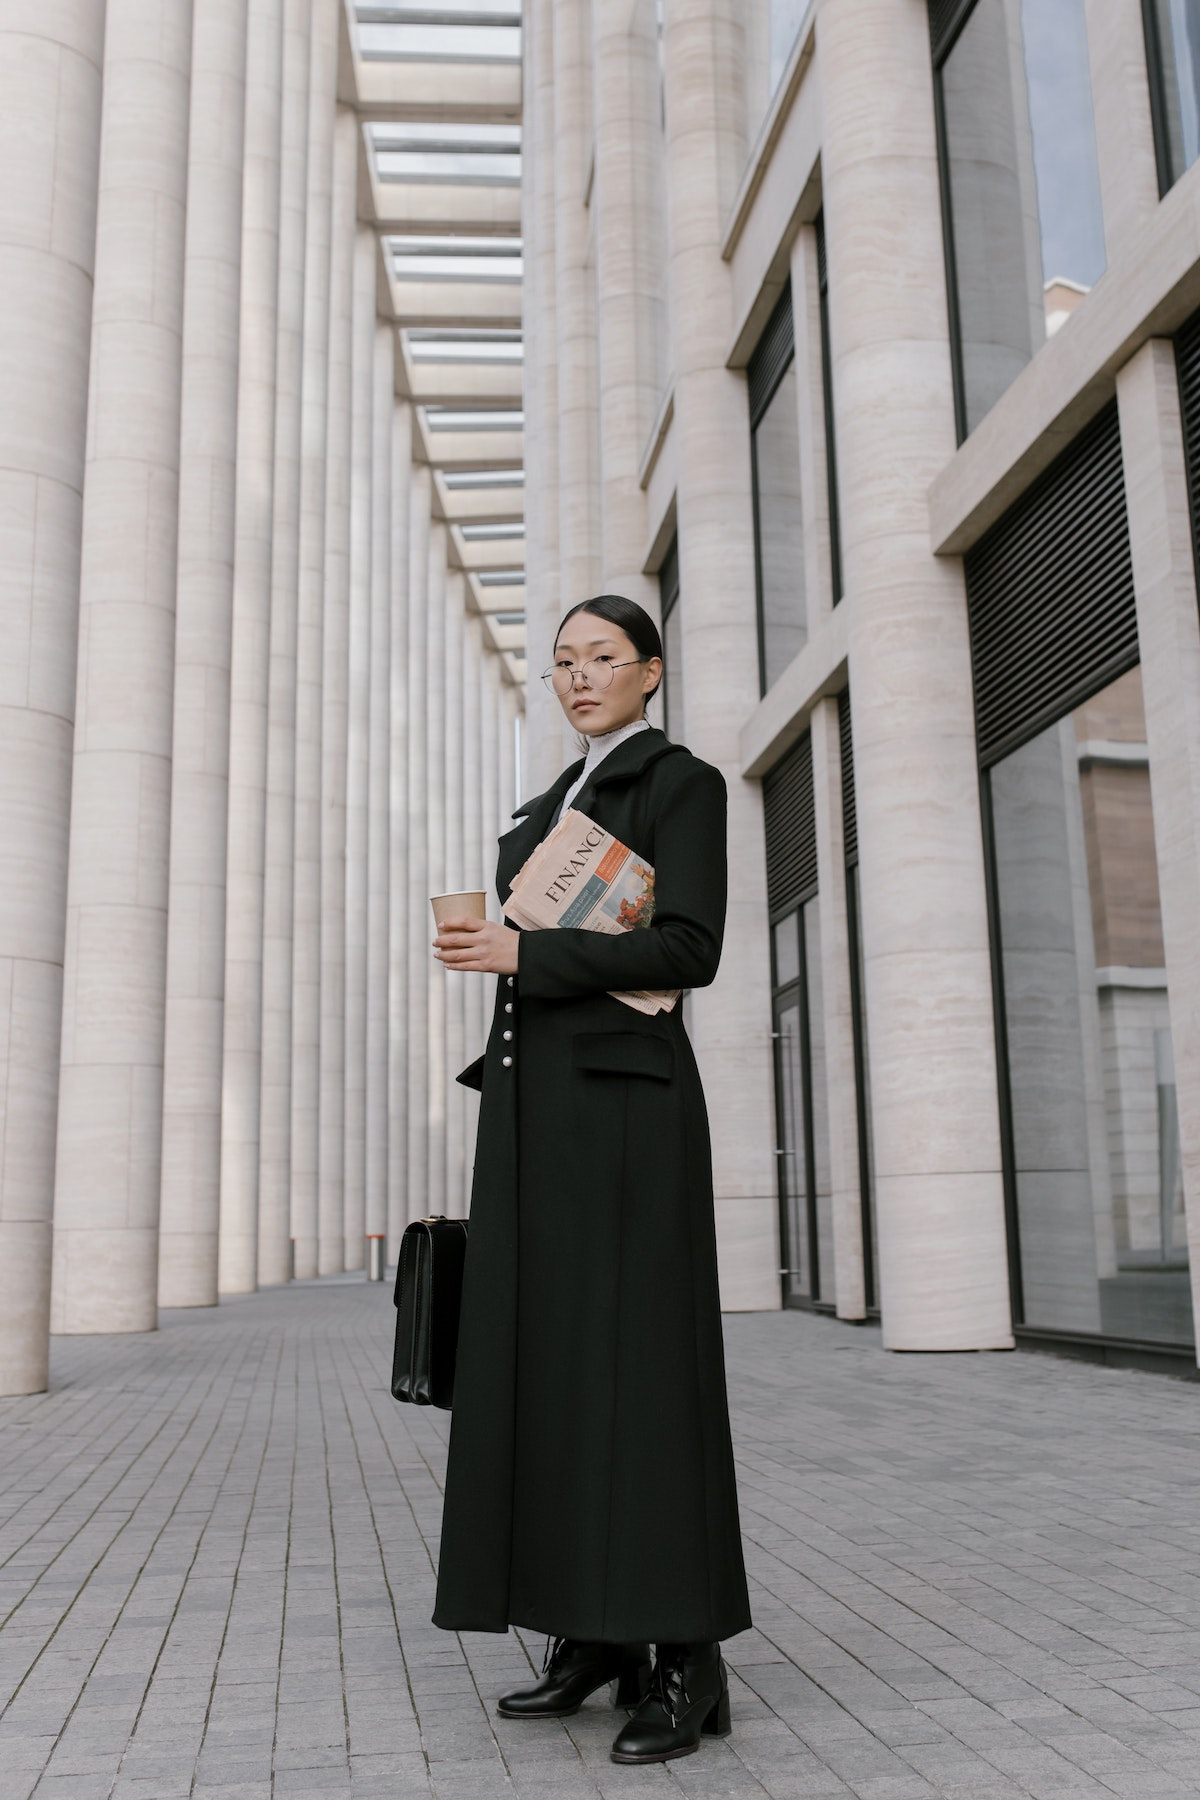 I Was a Successful Lawyer Suffering From Imposter Syndrome Until I Changed This Productivity Habit - Women On Topp - Womenontopp.com